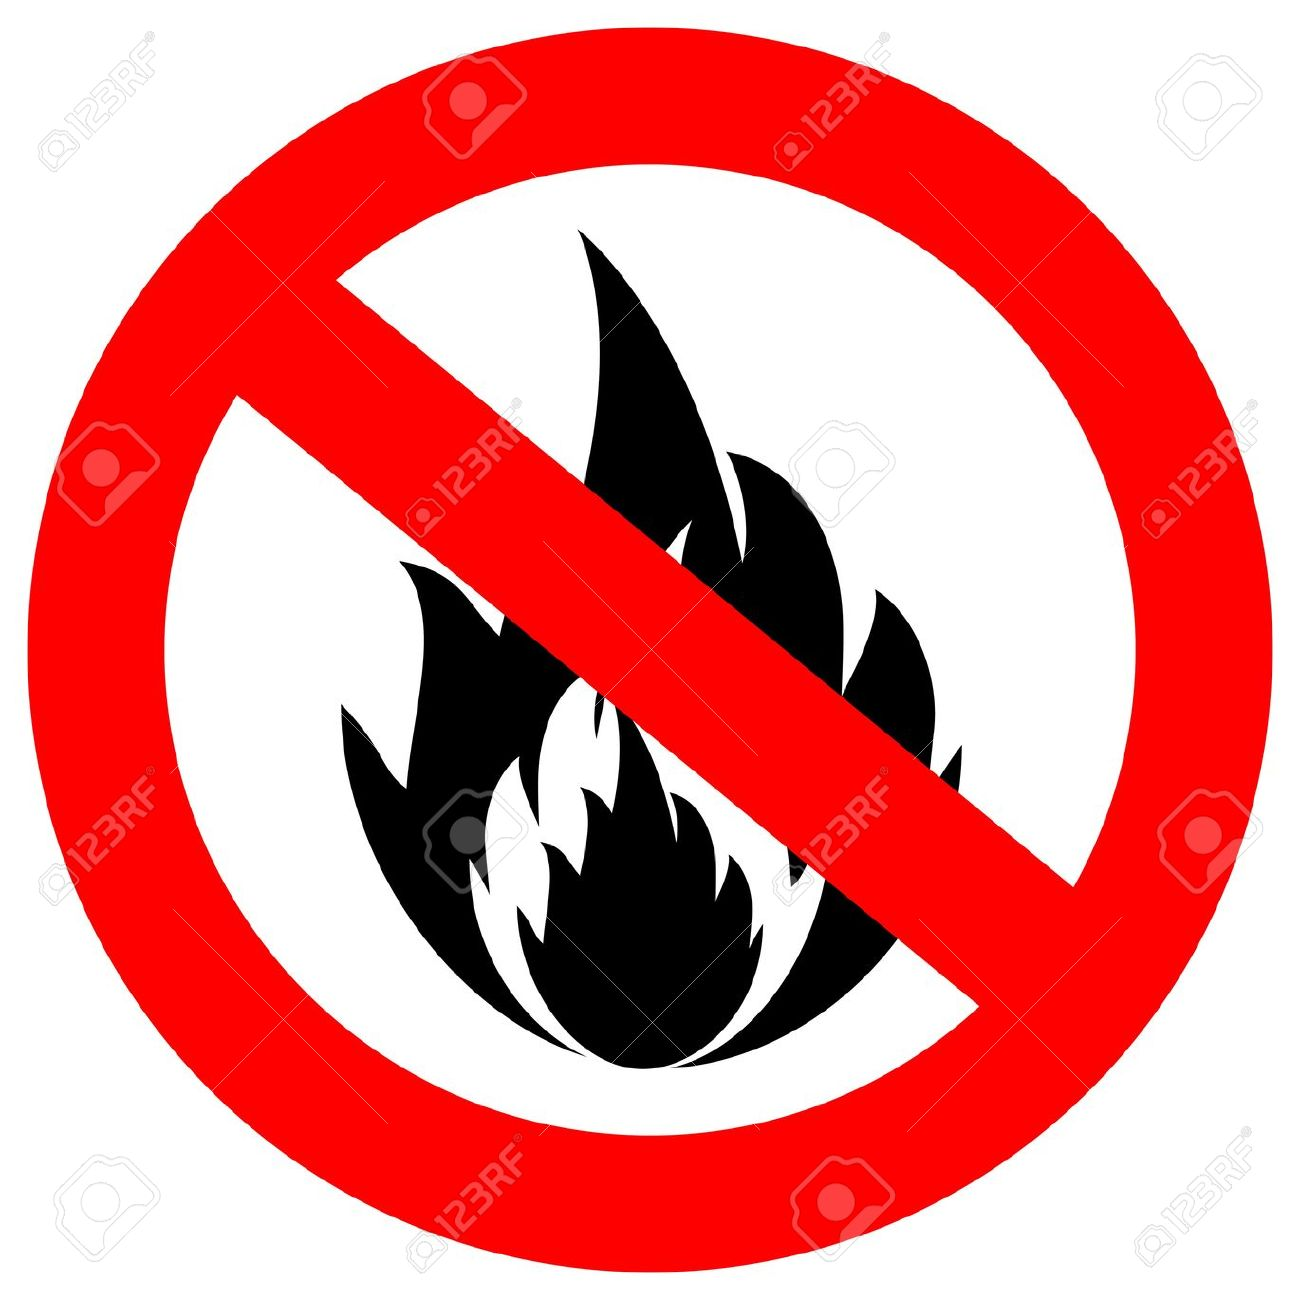 fire sign clipart best caution sign free clipart caution sign clip art free